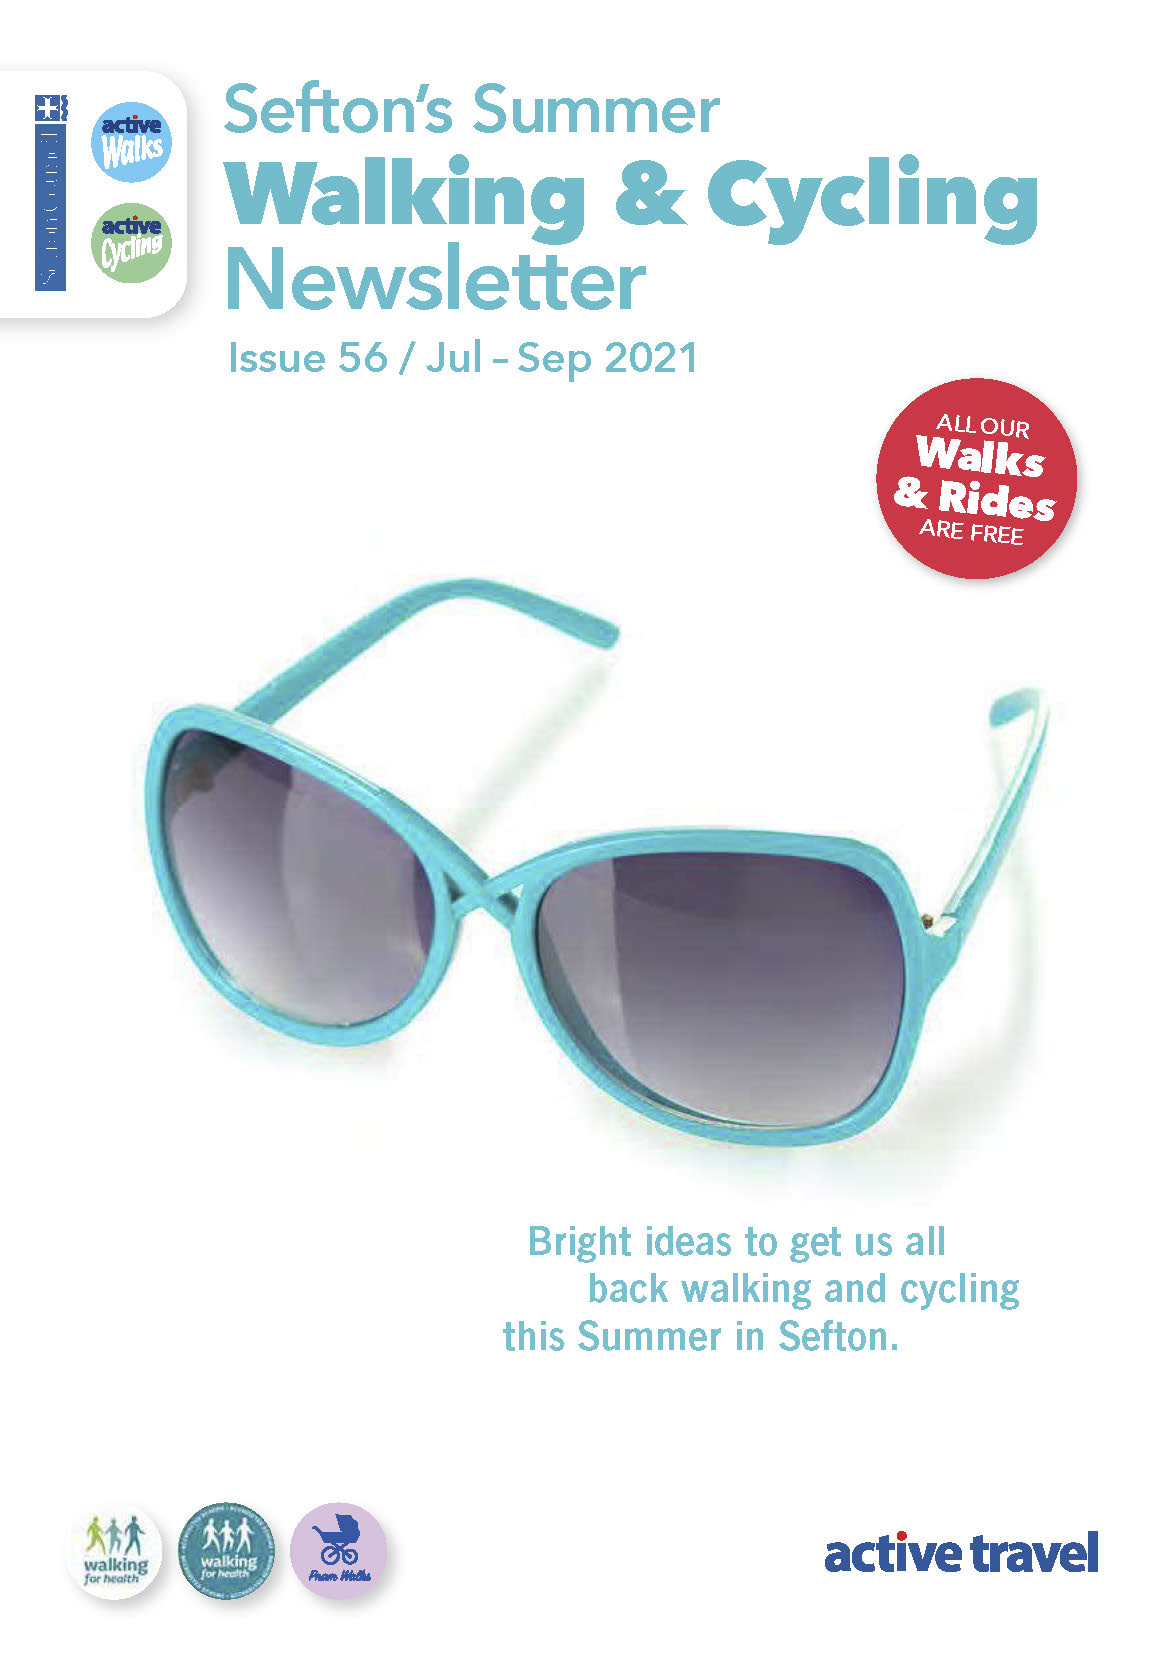 Image of new walking and cycling newsletter